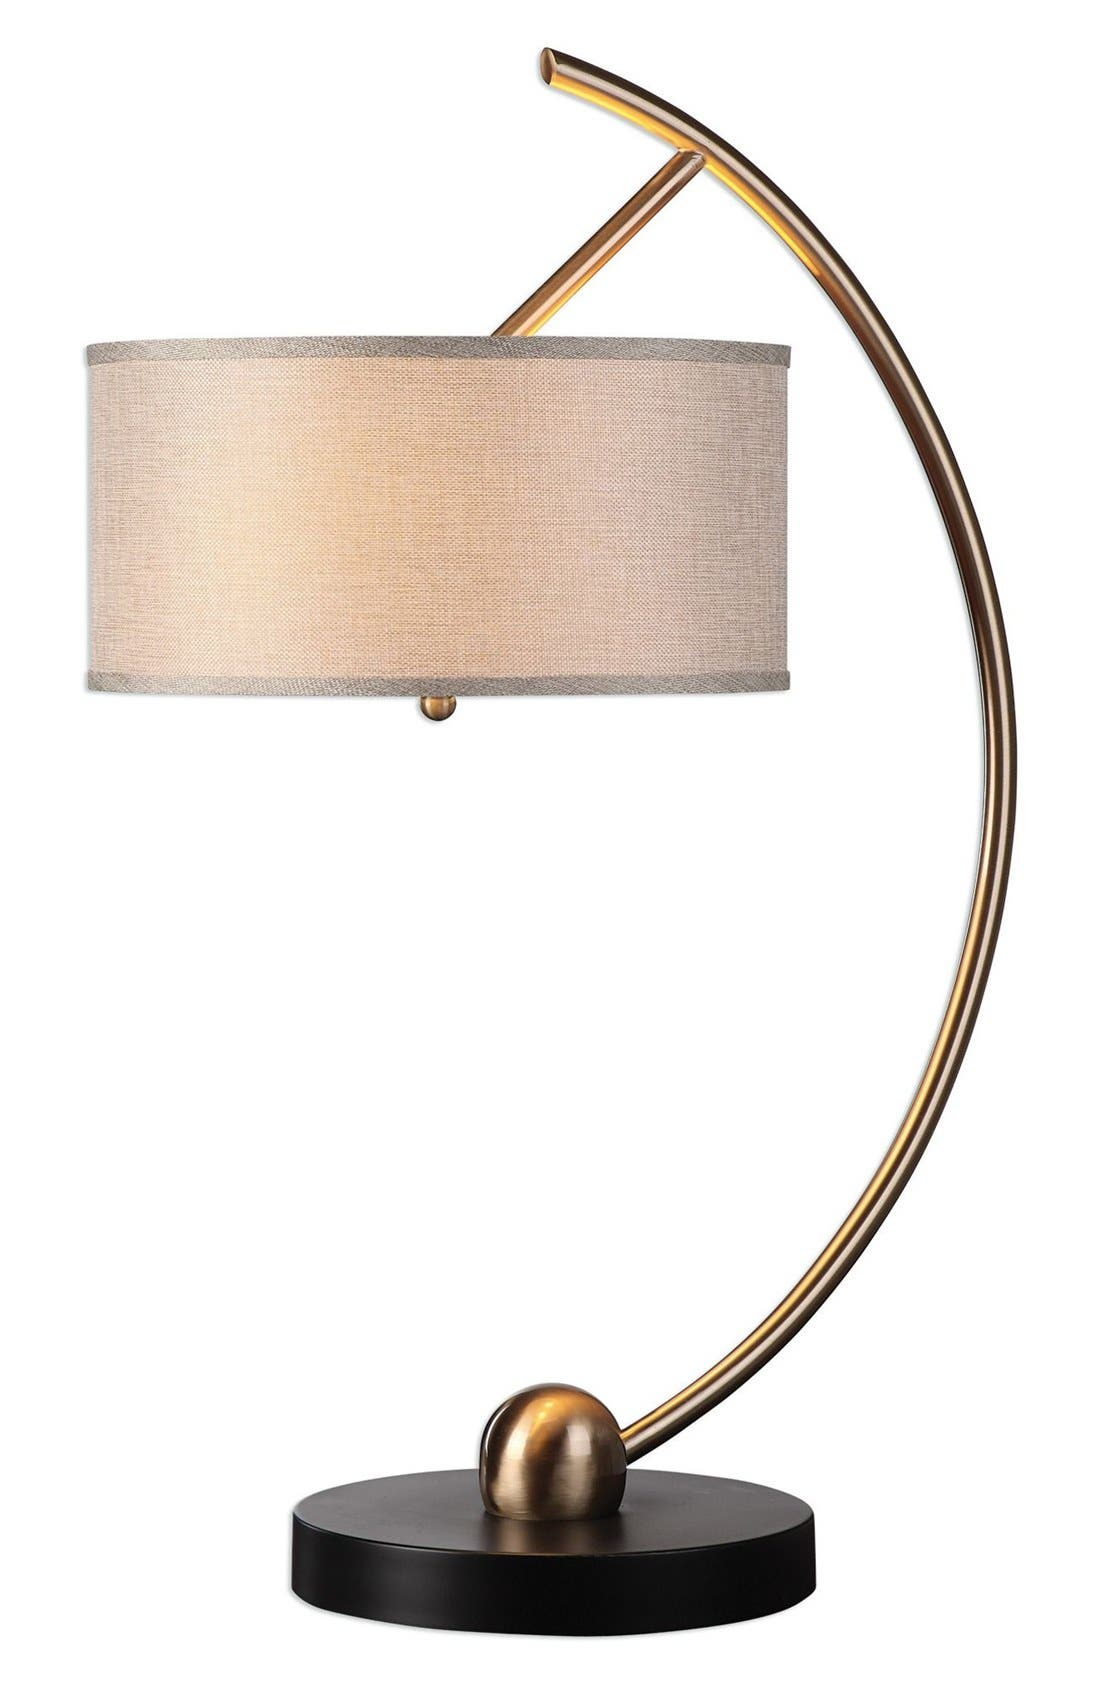 Curved Brass Table Lamp,                             Main thumbnail 1, color,                             Brass